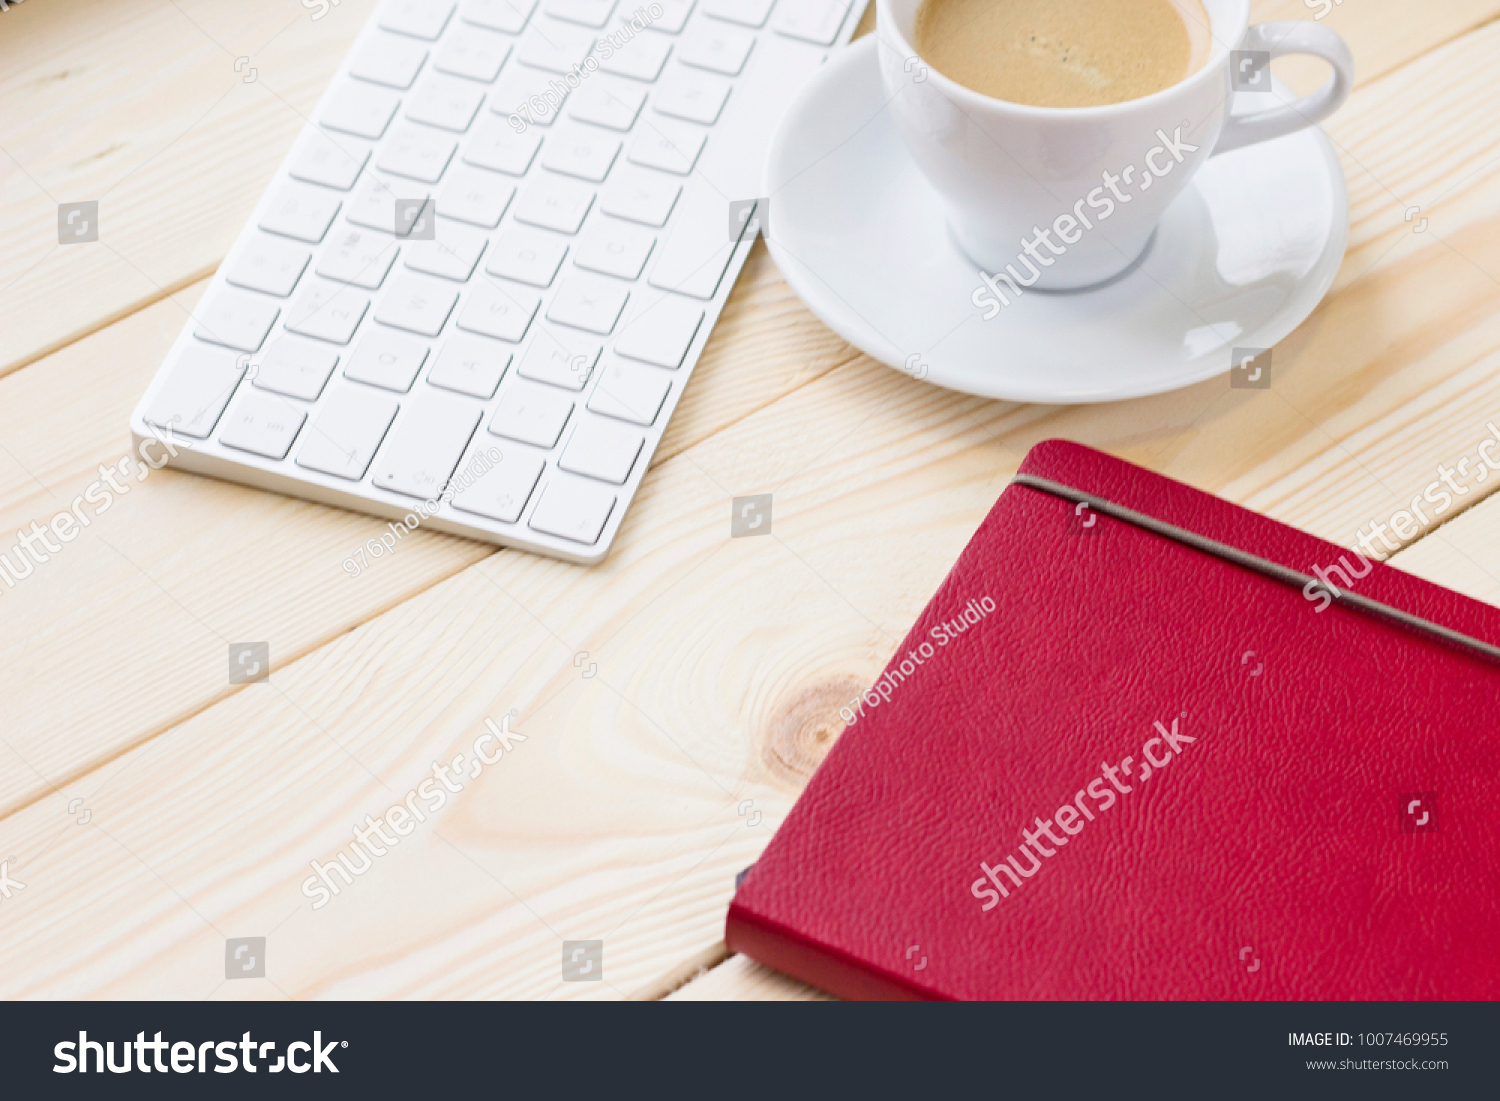 Stylish Business Office Home Workplace Concept Stock Photo (Royalty ...